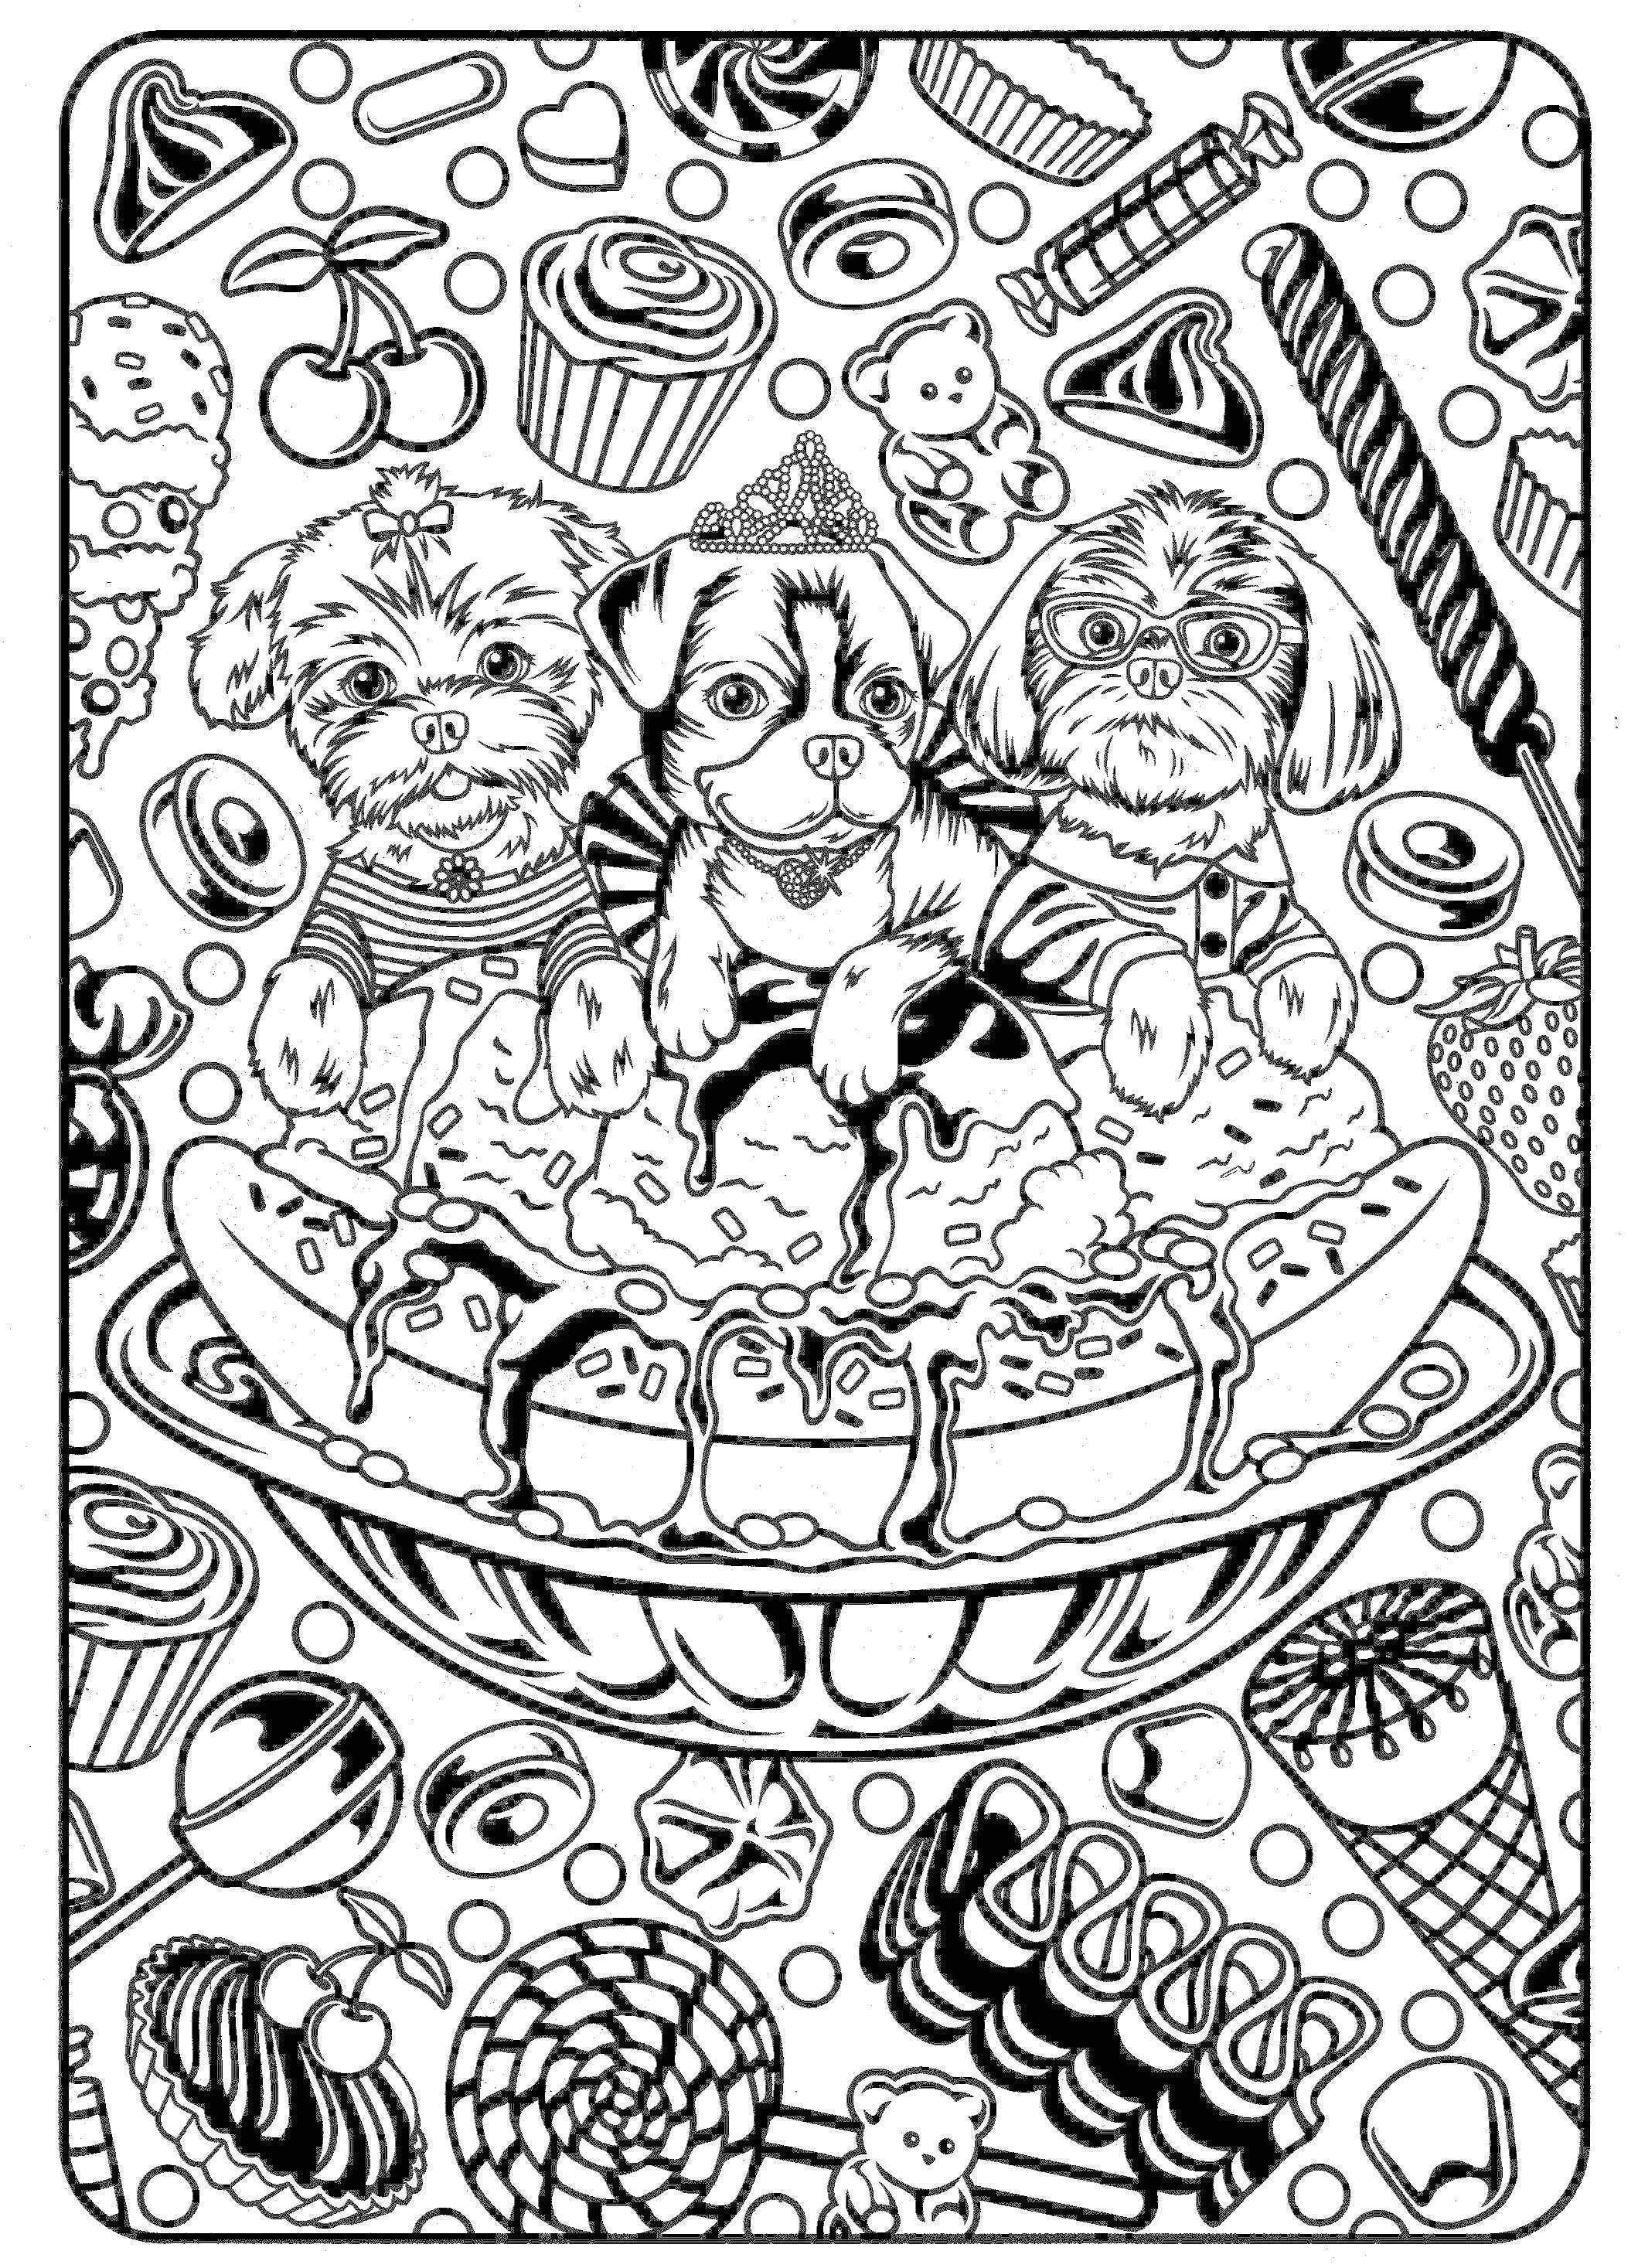 Dolphin s Awesome Frog Coloring Pages Fresh Frog Colouring 0d